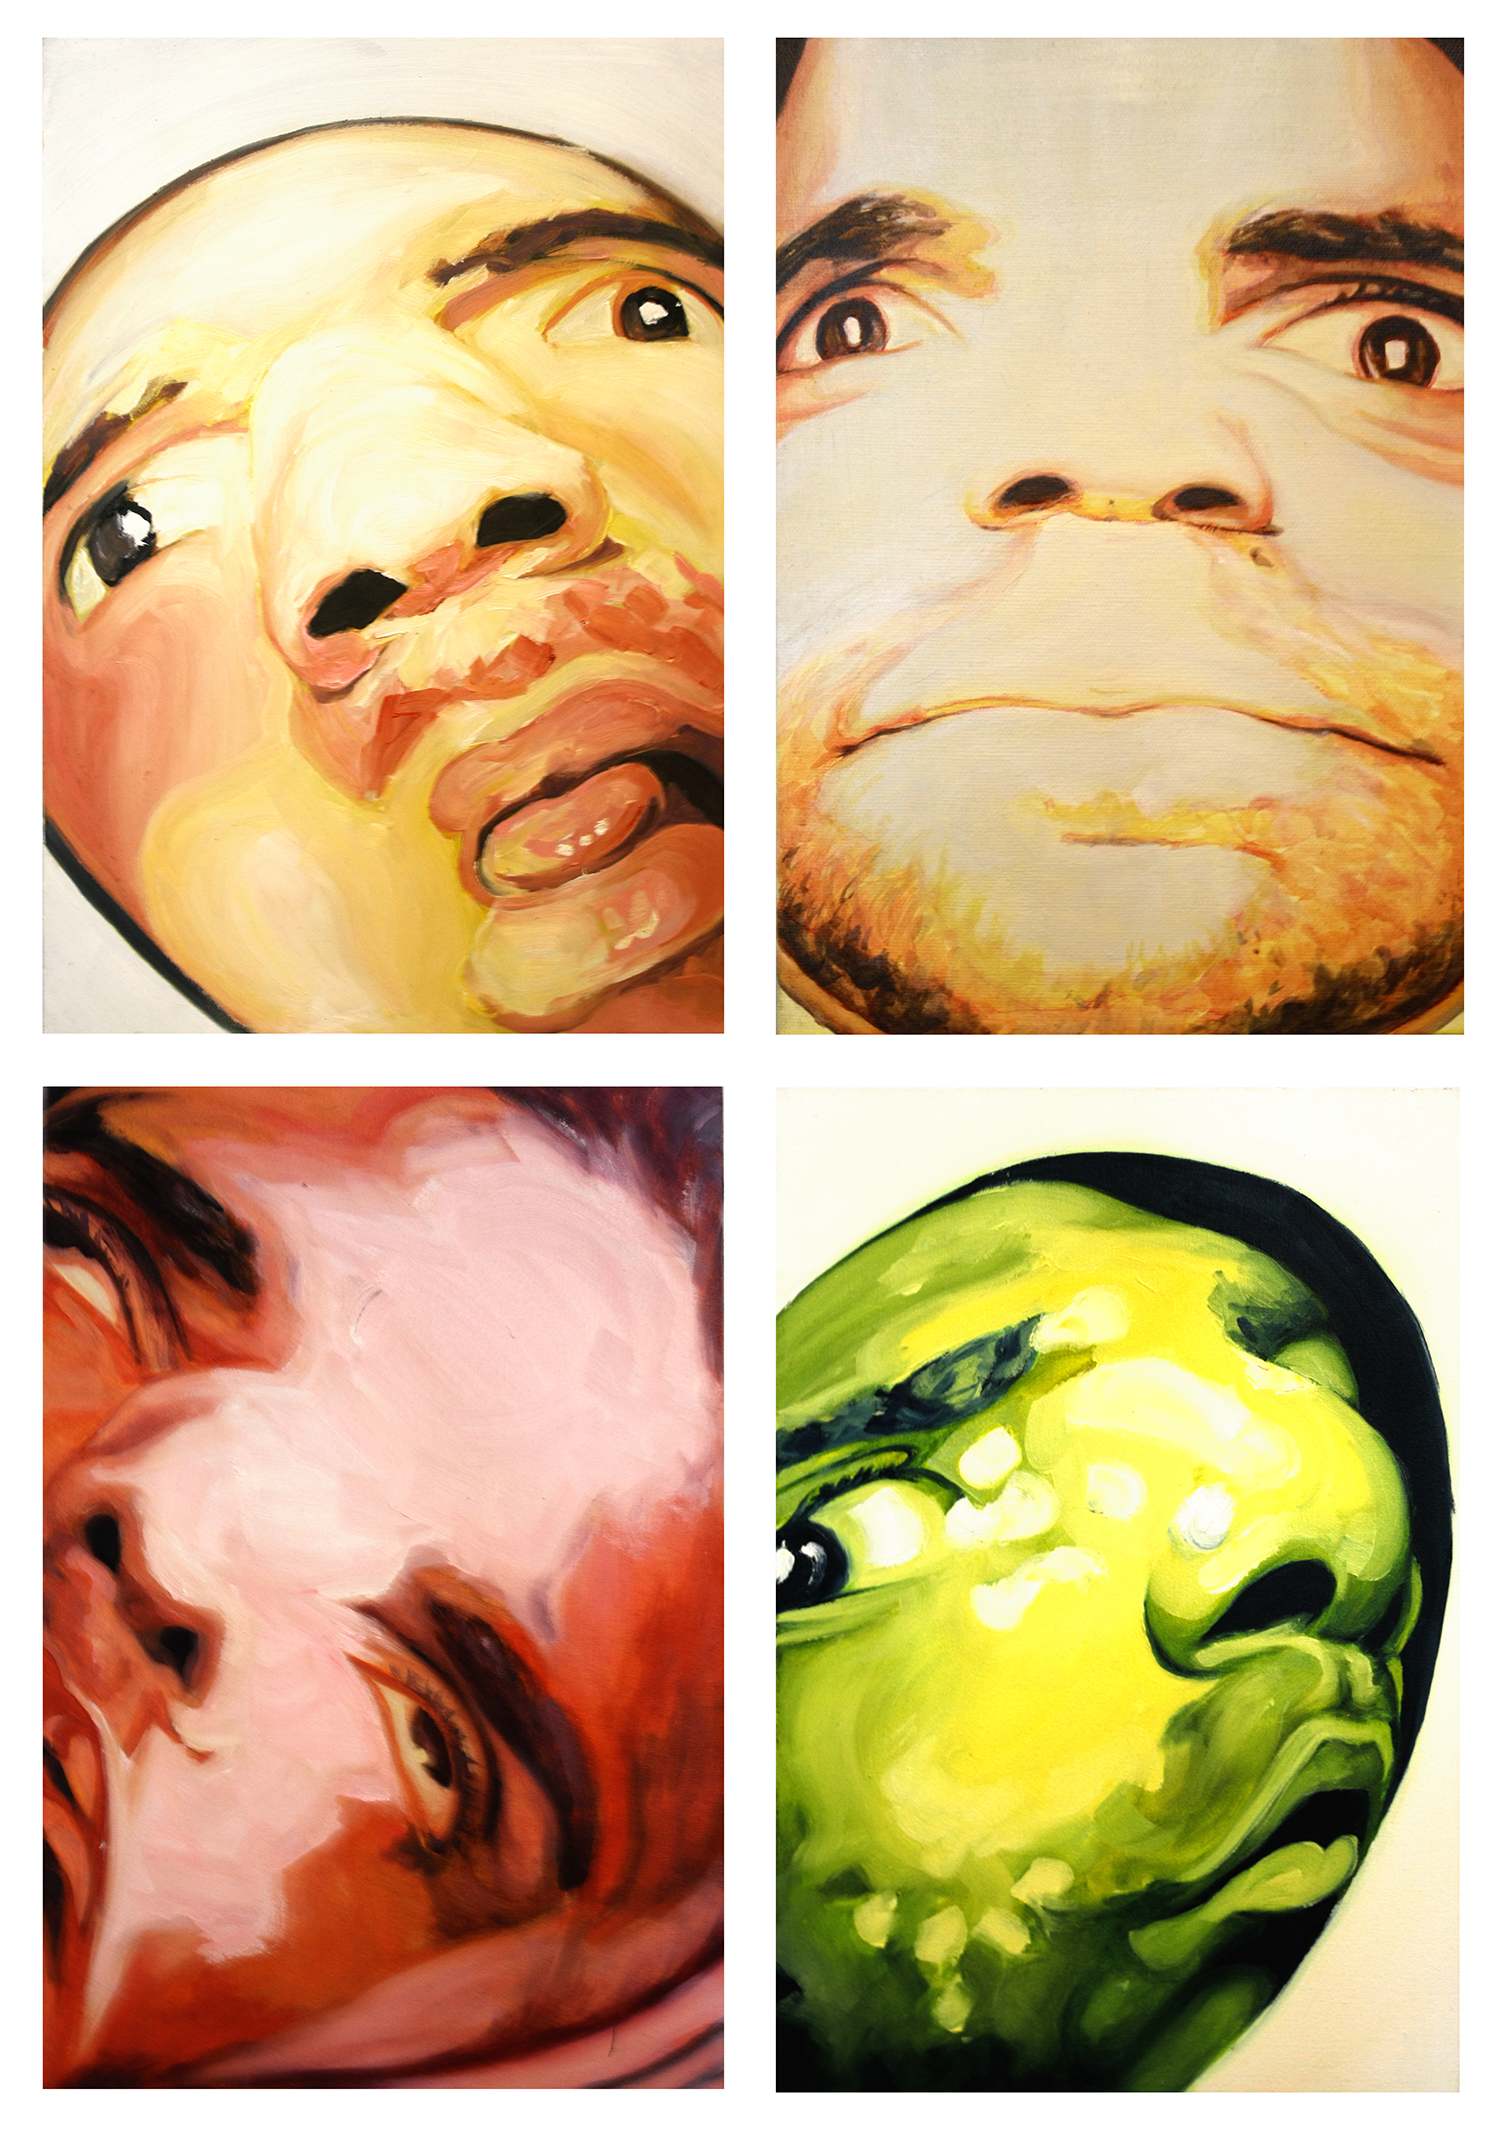 6-self-portraits-x4-oil-acrylic-on-canvas-board-1-x-1-5-2015